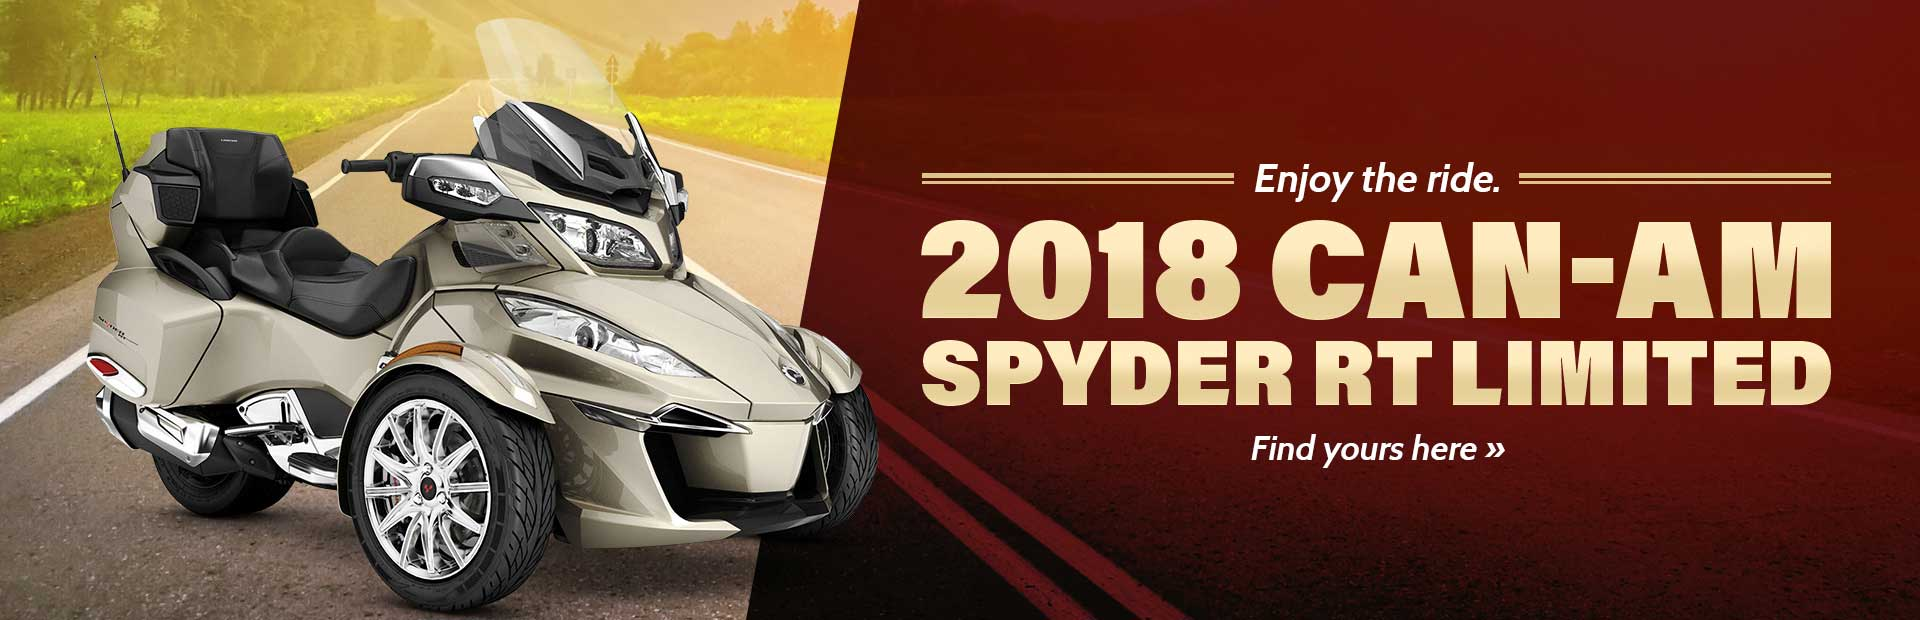 2018 Can-Am Spyder RT Limited: Click here to view the model.